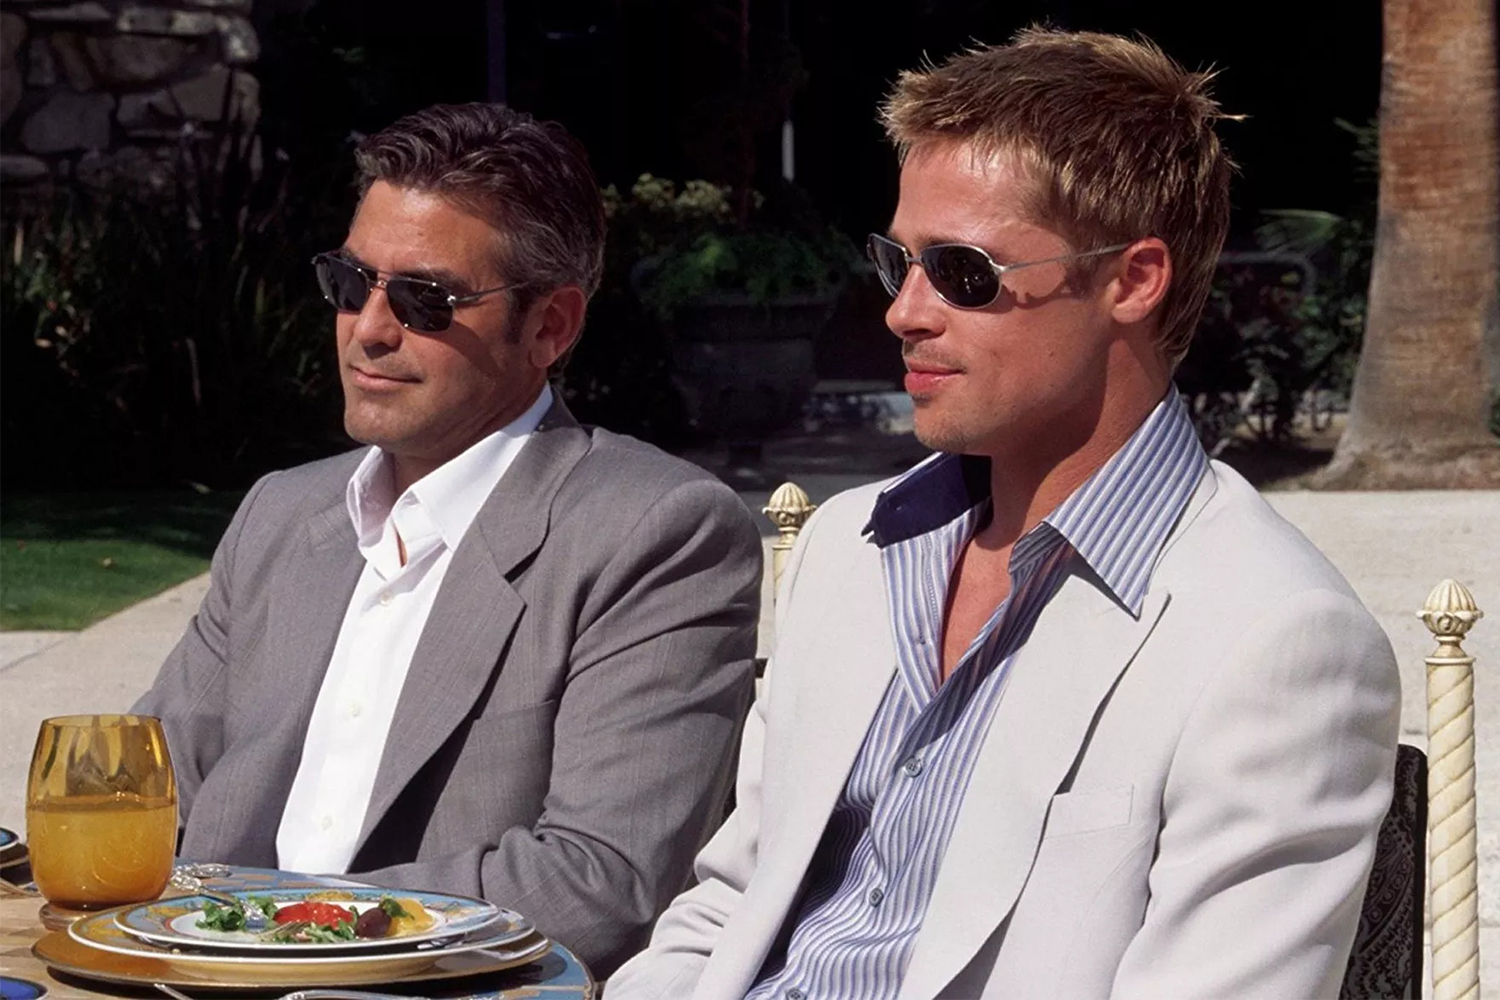 70f908586e17 10 Iconic Sunglasses From the Movies and Where to Buy Them - InsideHook